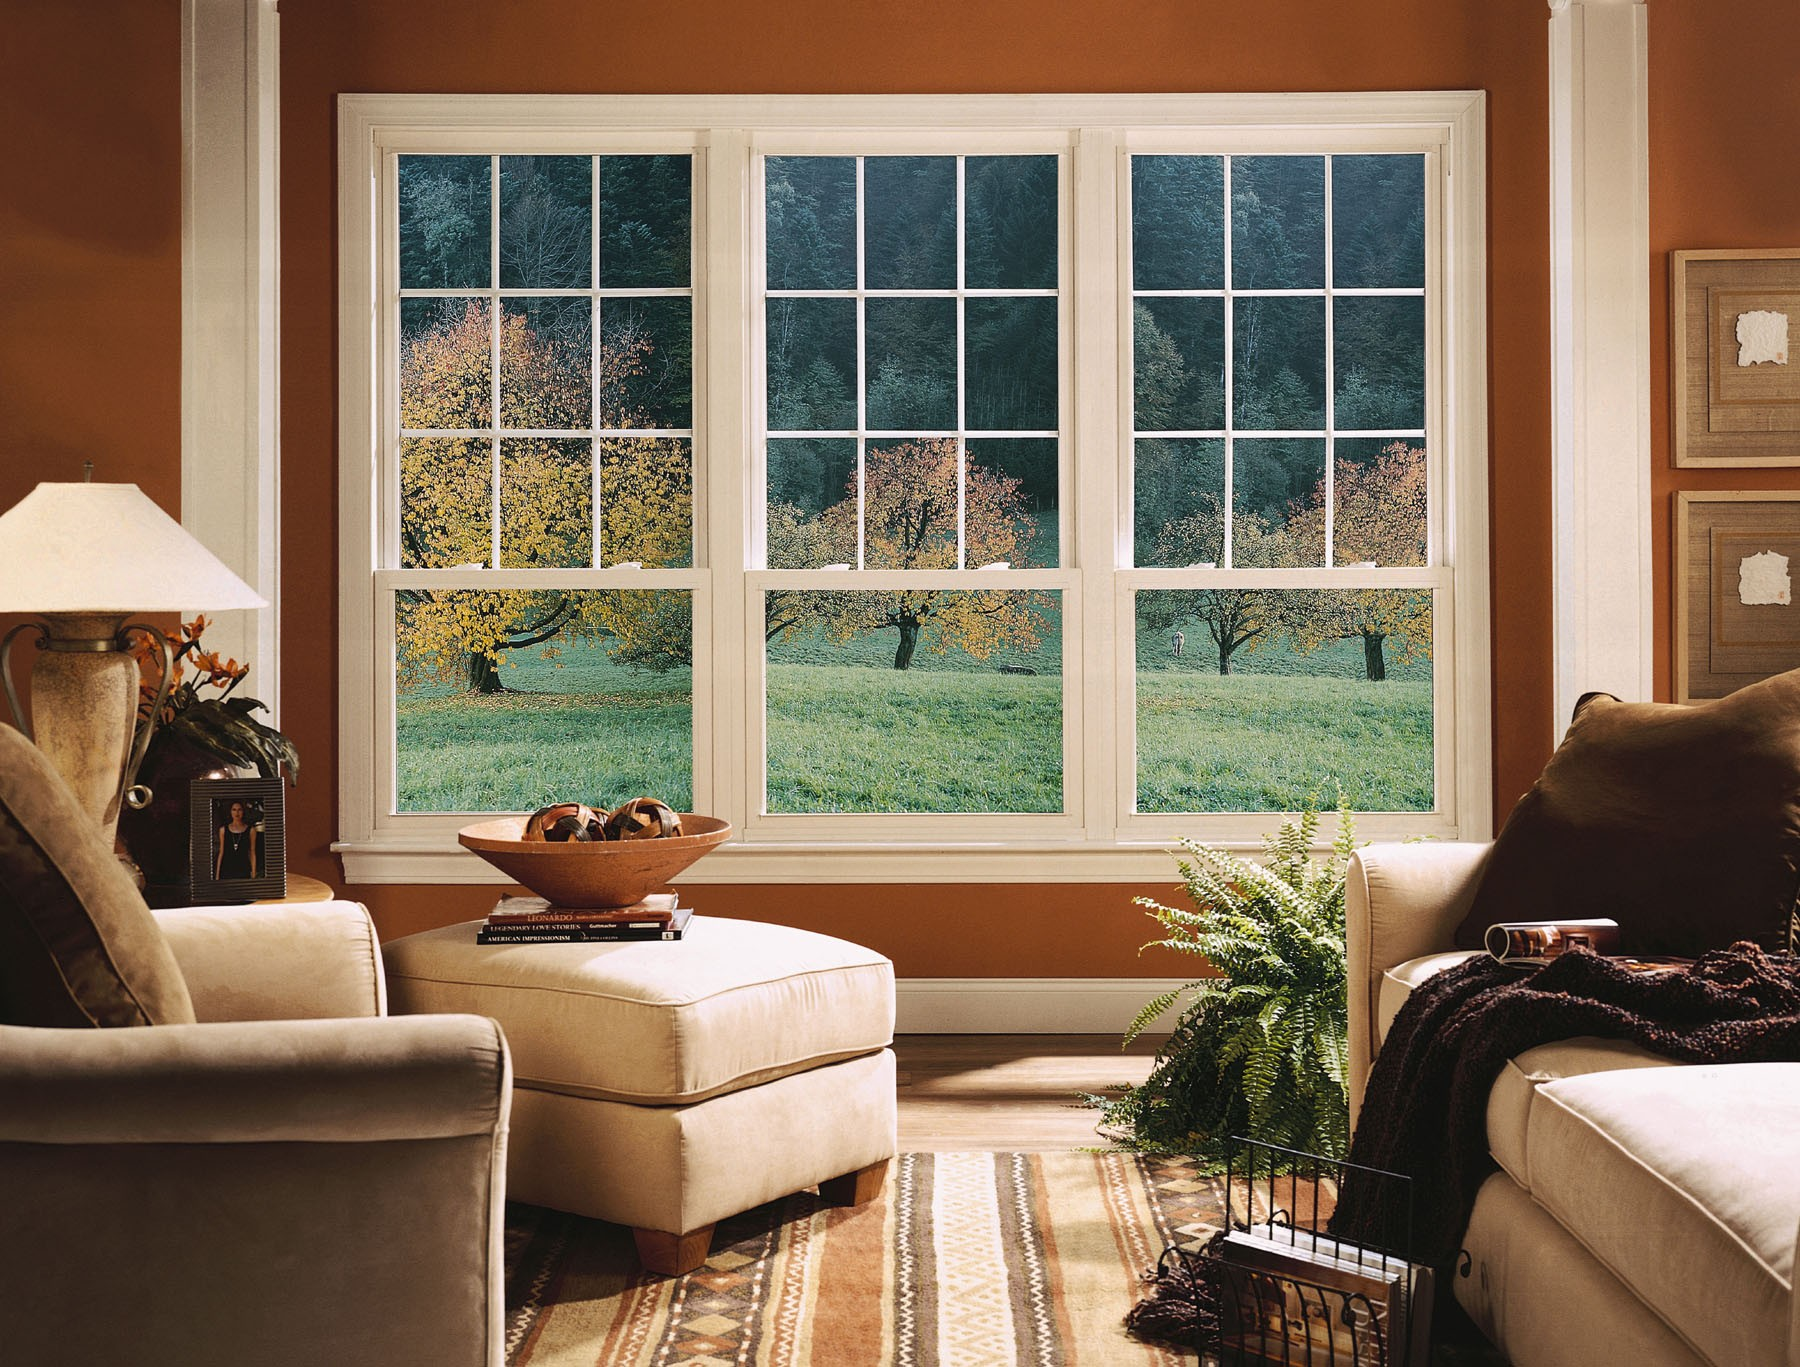 Interior windows - Replacement Windows Rockford Il Kobyco Replacement Windows Interior And Exterior Doors Closet Organizers And More Serving Rockford Il And Surrounding